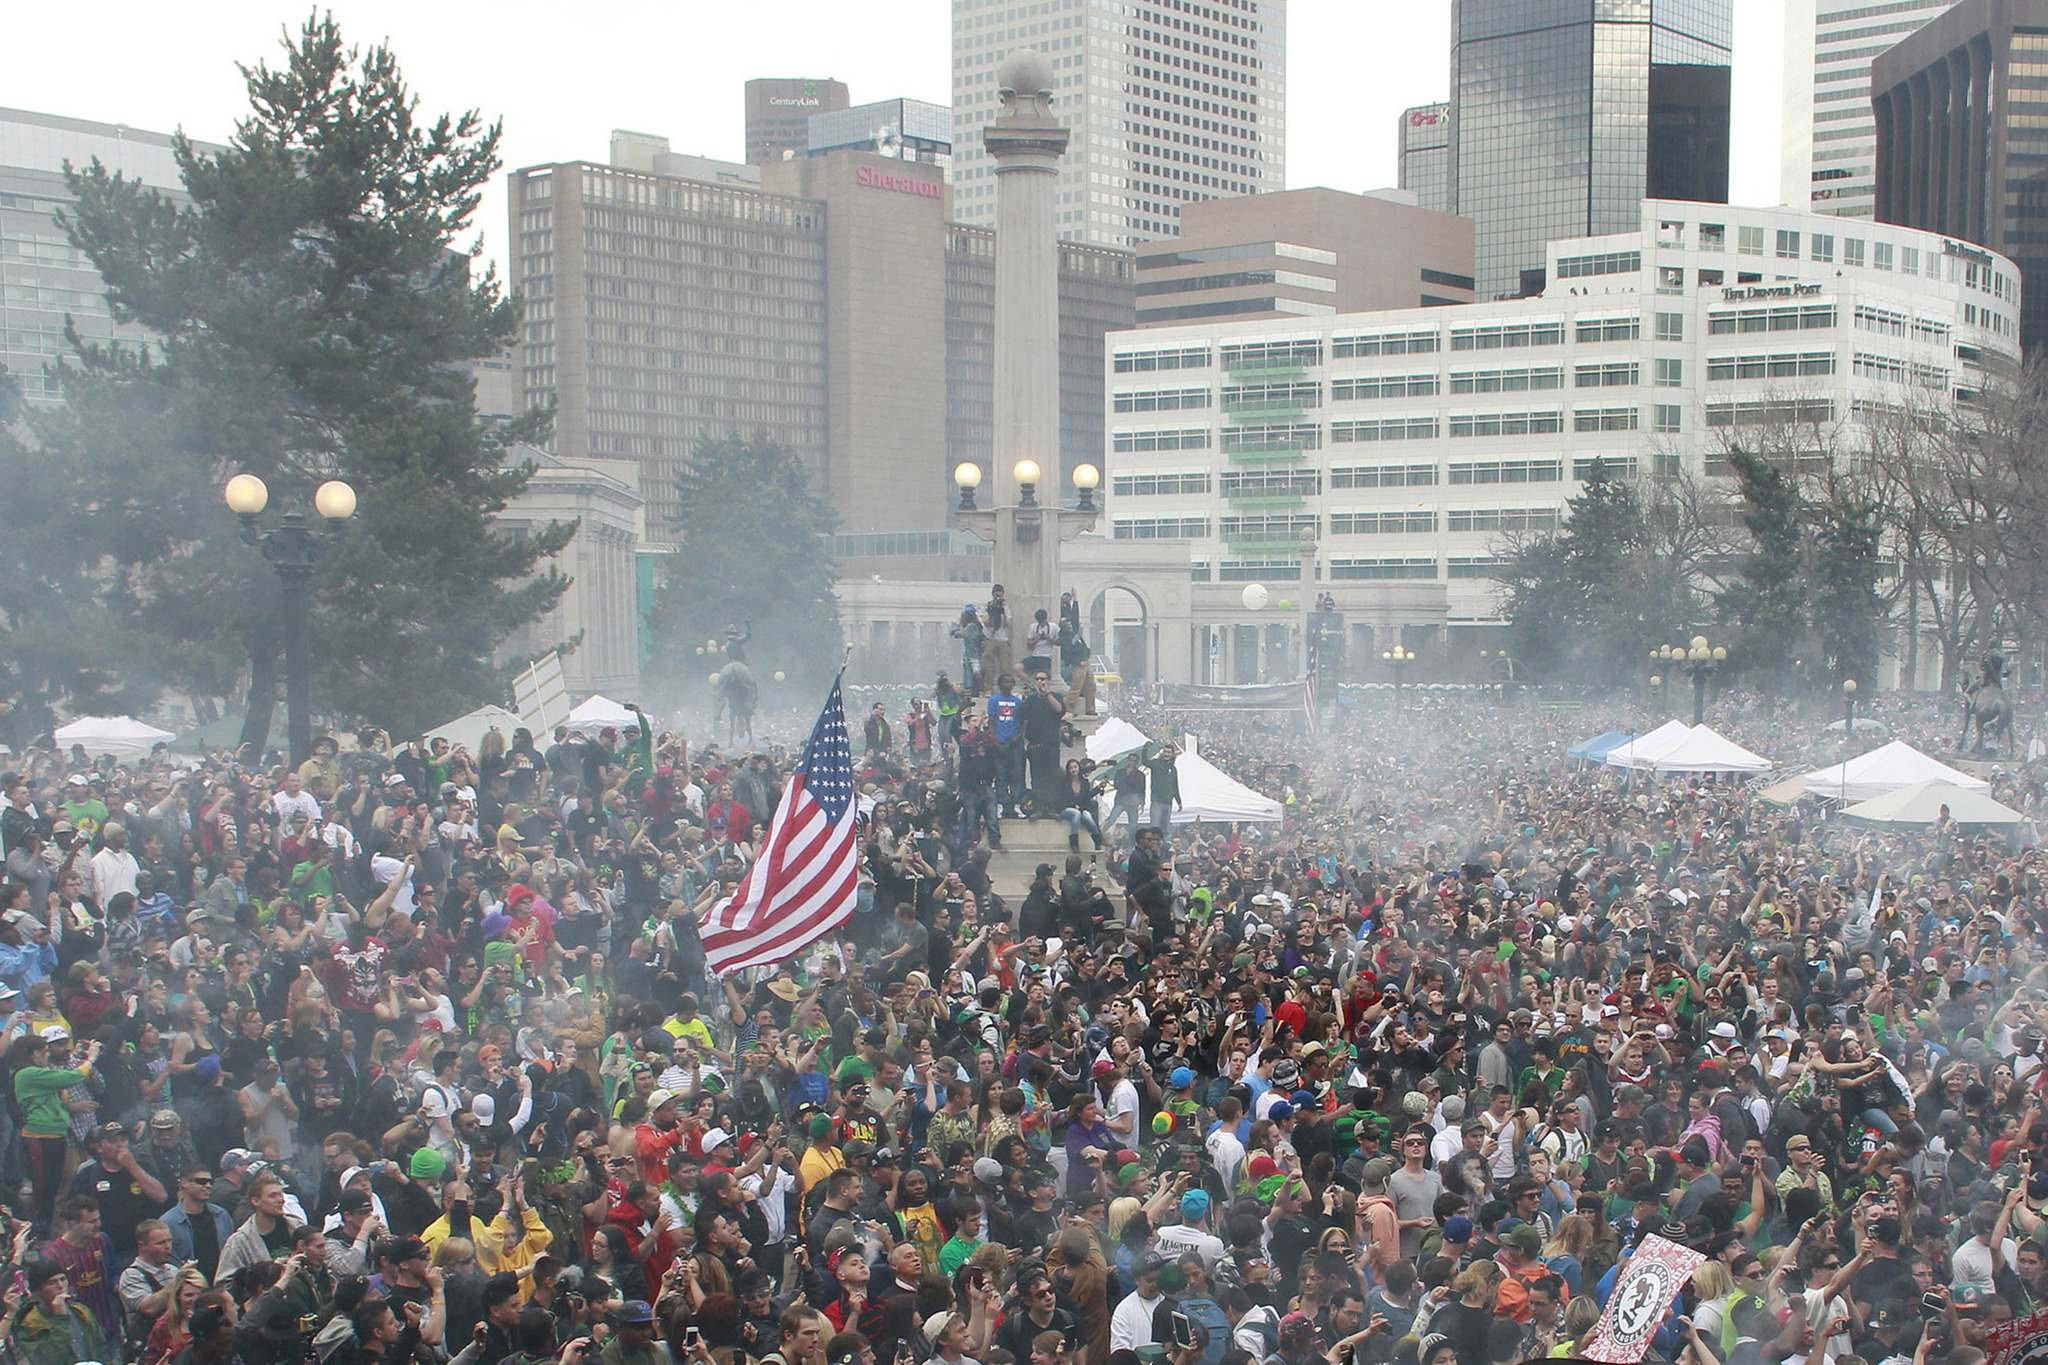 A 2018 study suggested that April 20 cannabis celebrations, known as 4/20, were responsible for an increase in fatal car crashes in the U.S. (Brennan Linsley / The Associated Press files)</p>